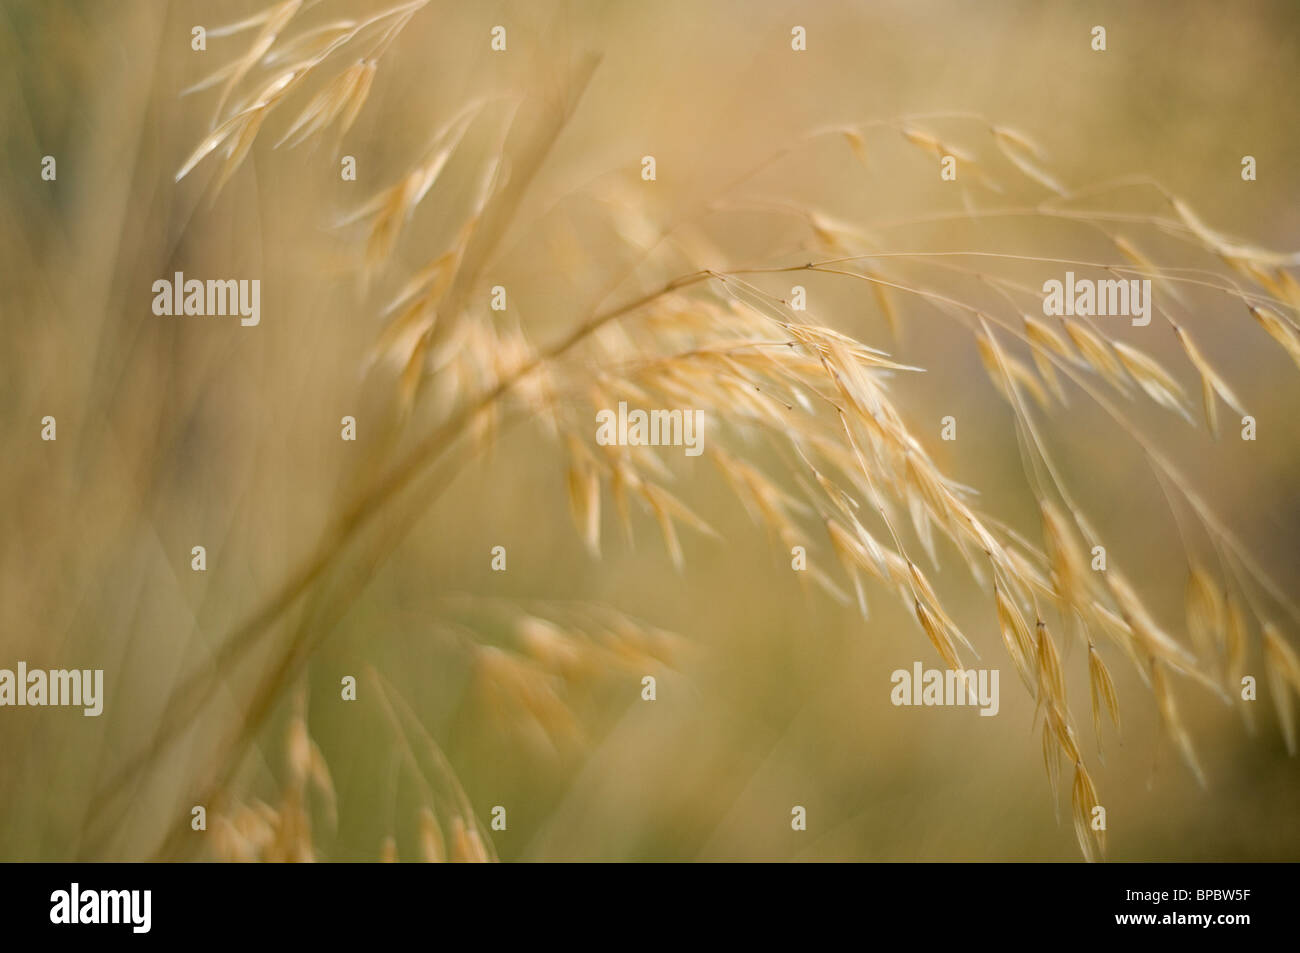 A close-up of some grass blowing in the wind. A shallow depth of field creating a blurred background - Stock Image